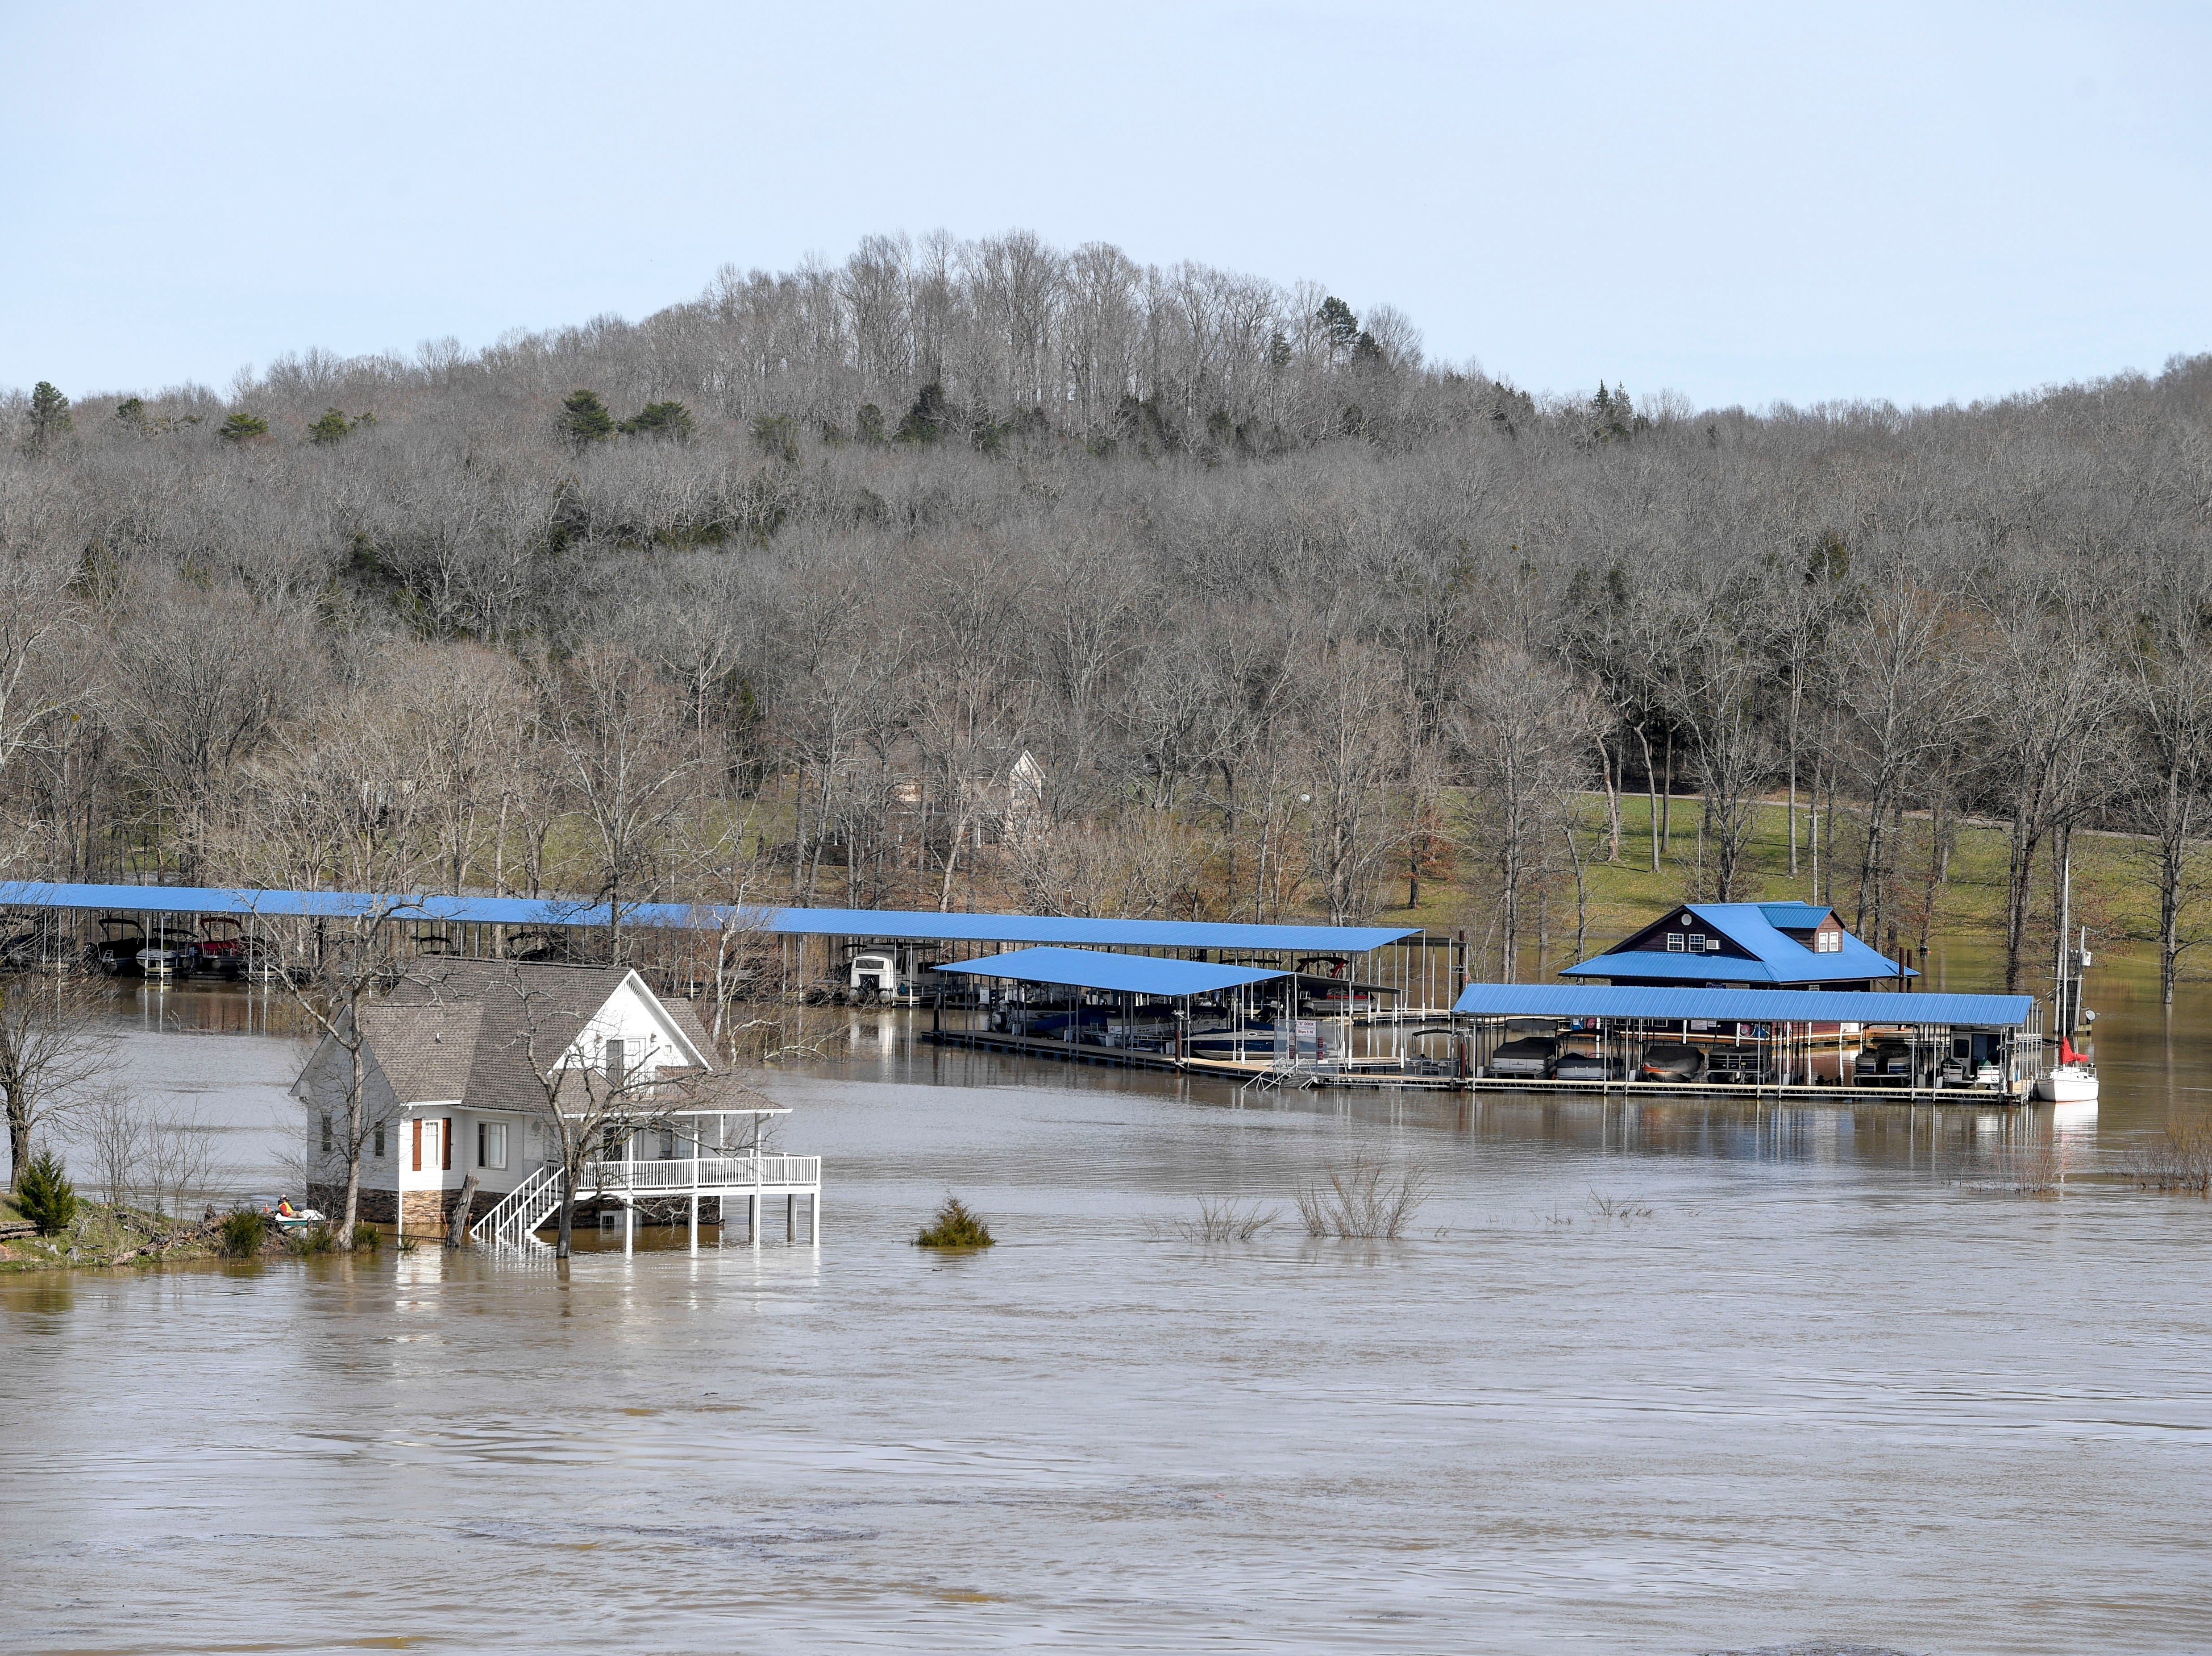 A marina and buildings around the Tennessee River are overcome by rising waters at US-641, in Decaturville, Tenn., on Monday, Feb. 25, 2019.